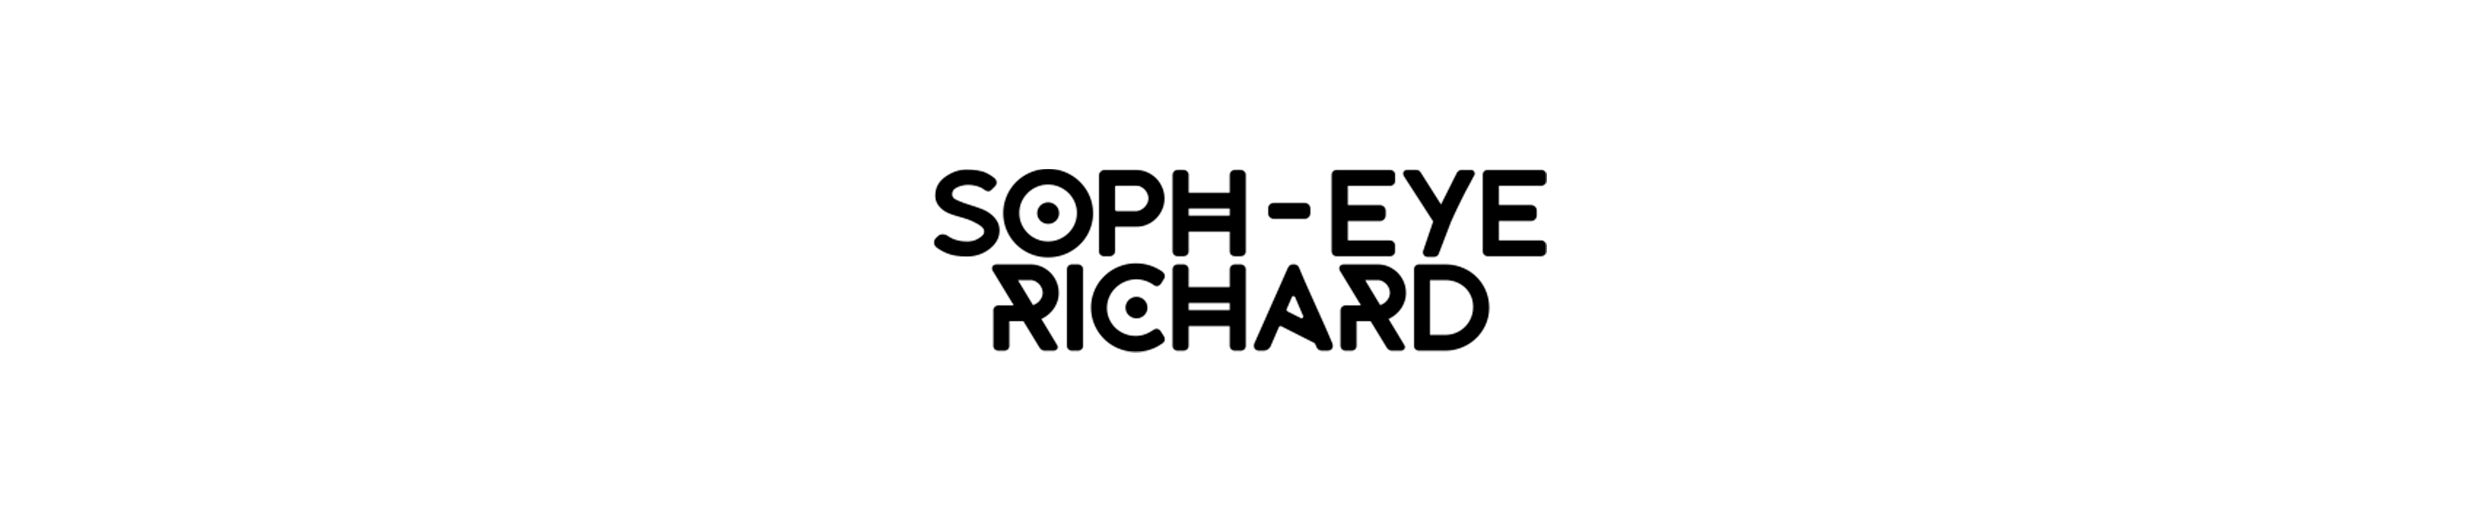 Soph-eye Richard | Free Listening on SoundCloud